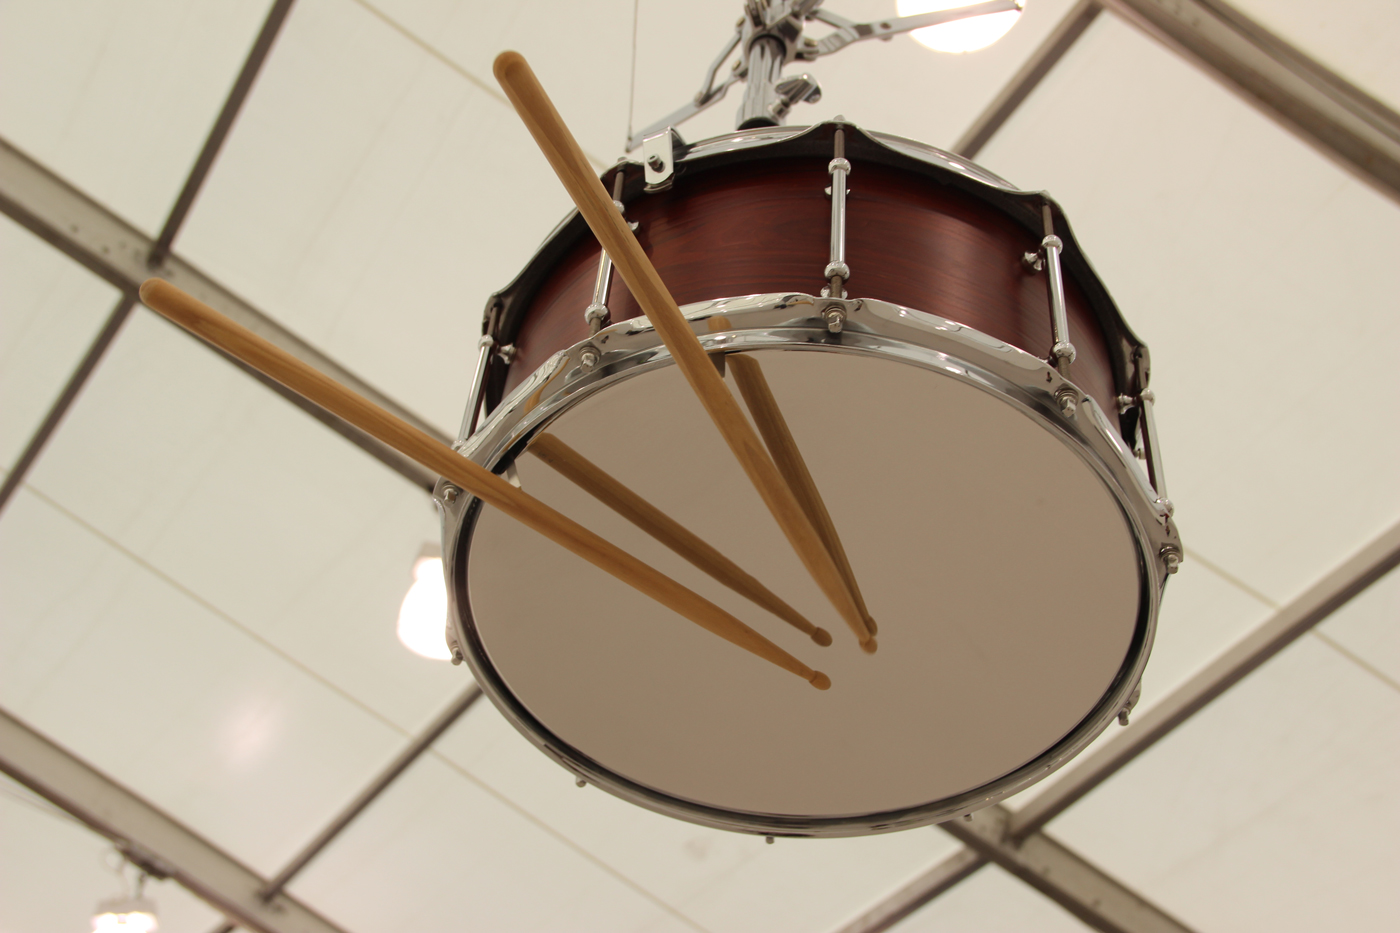 Anri Sala, Detail from  Bridges in the Doldrums  (2016)  ,  7 channel sound installation including 4 altered snare drums, loudspeaker parts, snare stands, drumsticks, 2 speakers and a subwoofer, Marian Goodman Gallery, New York, NY